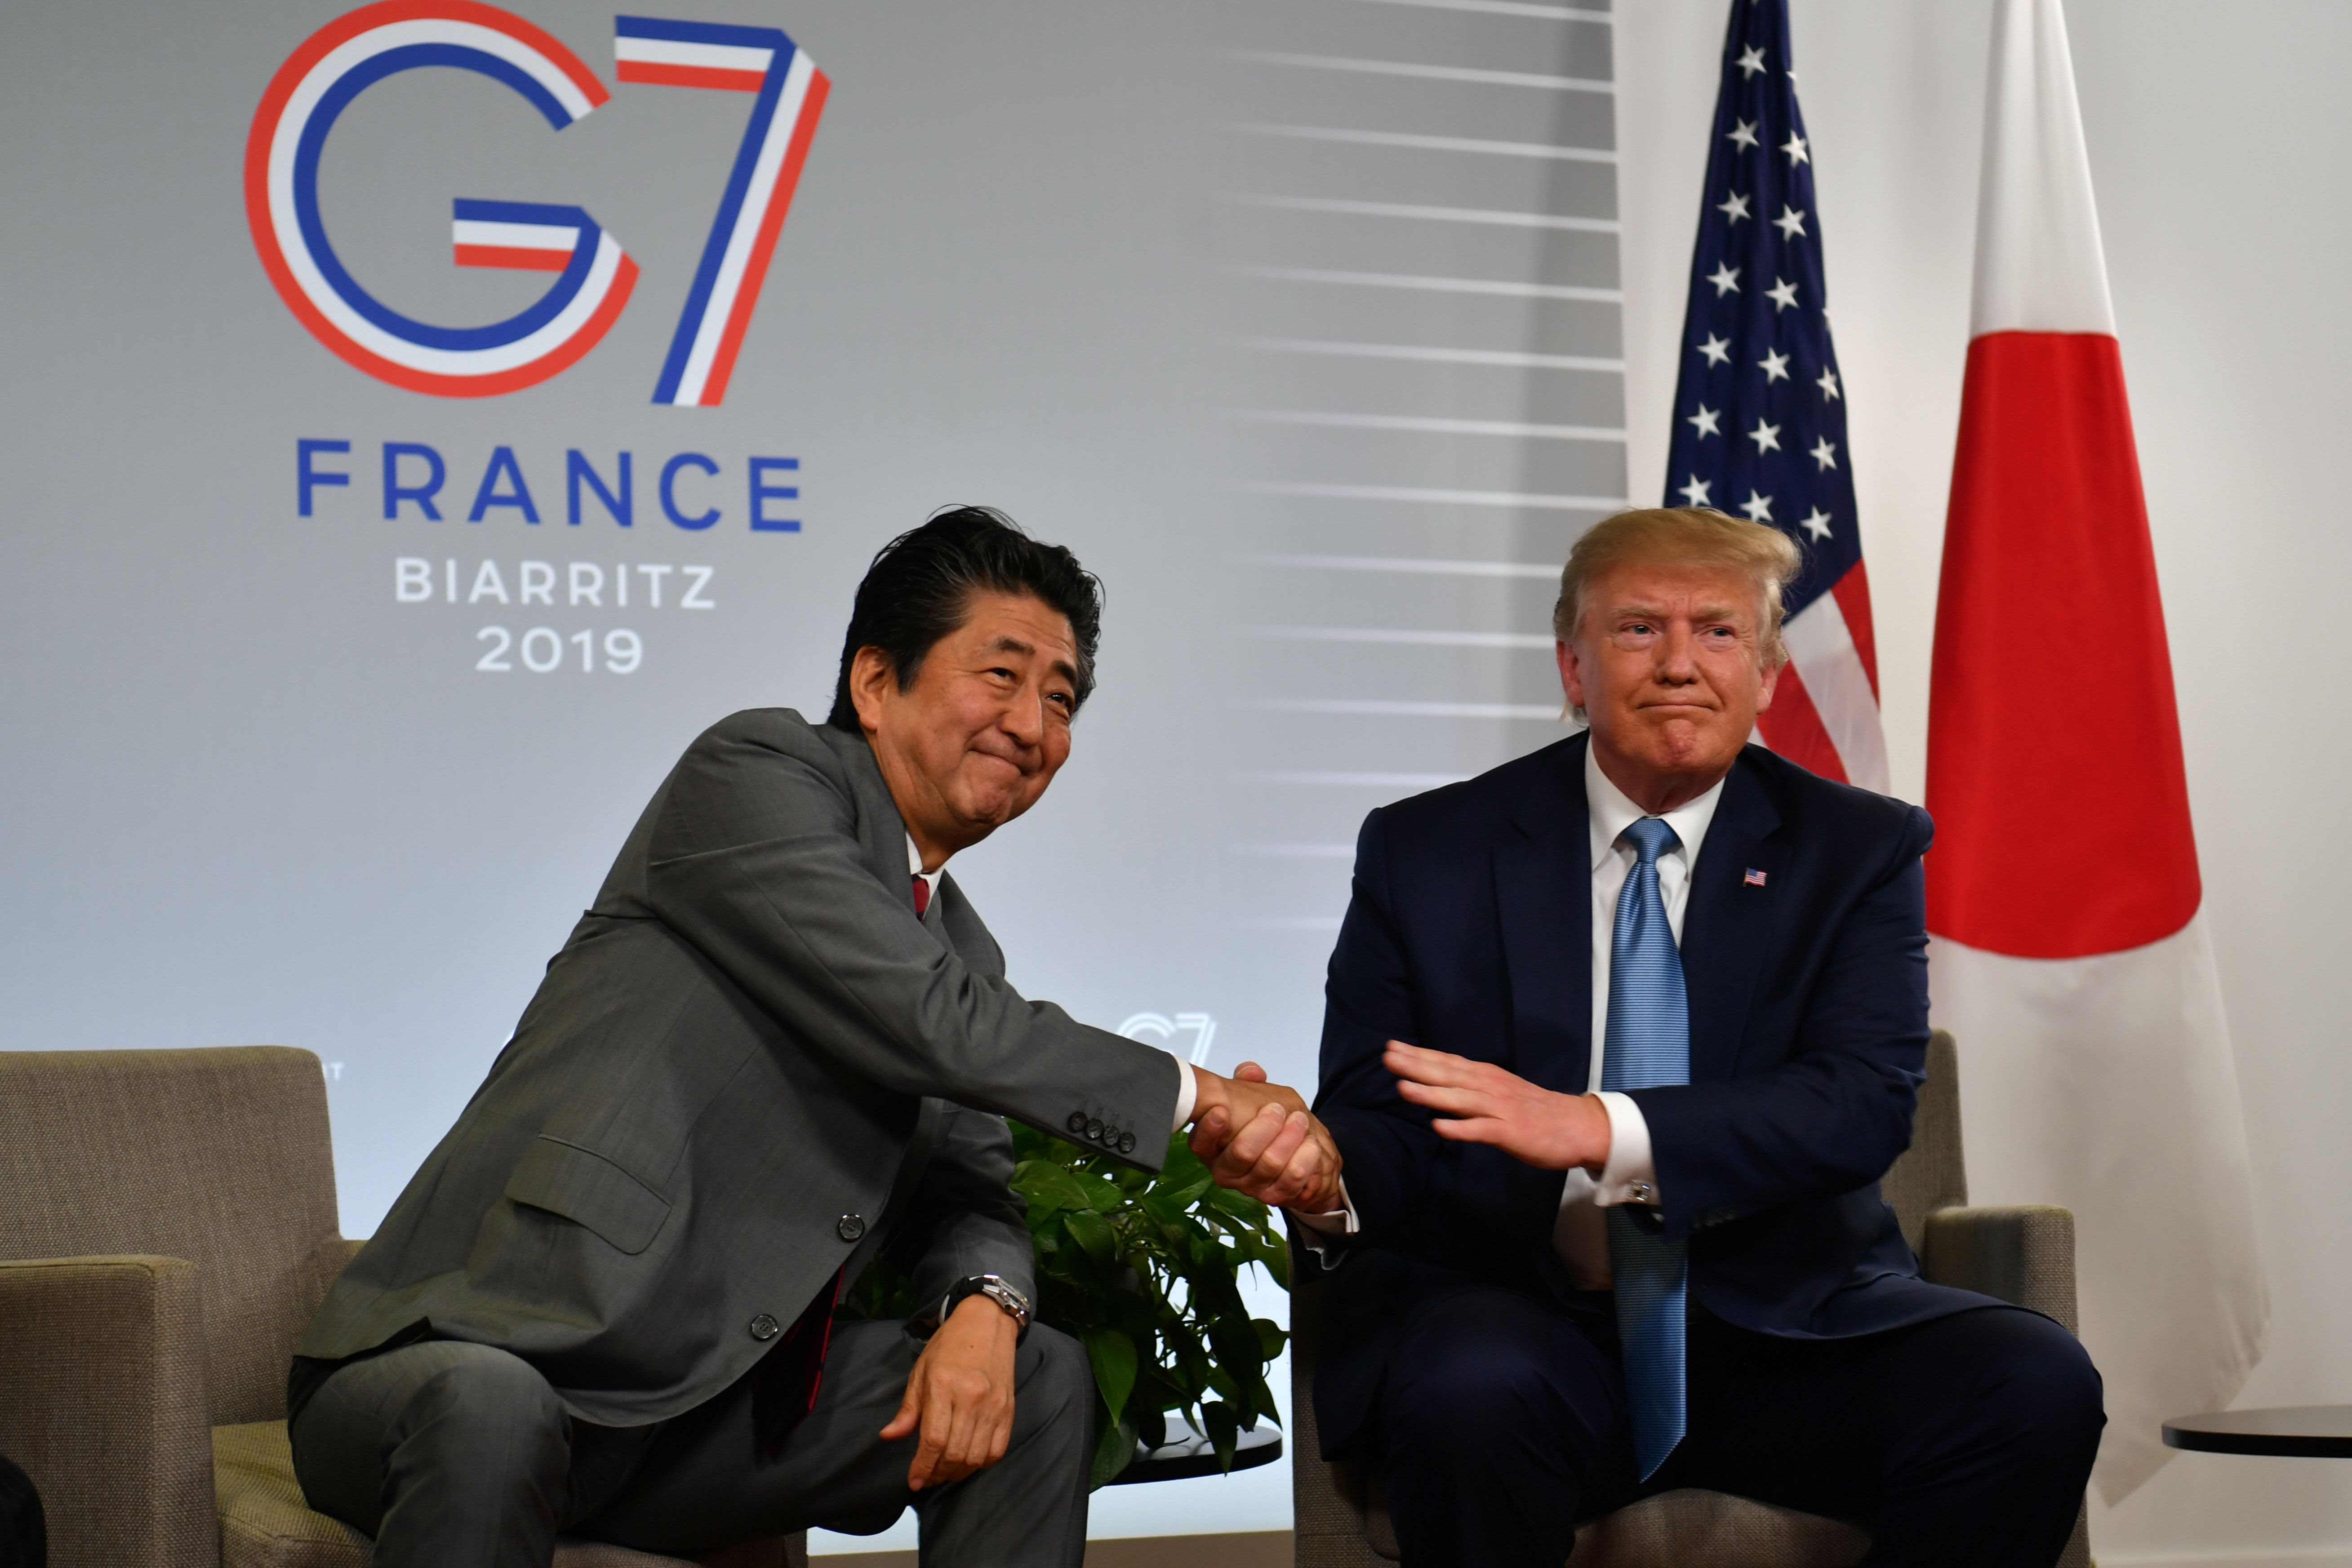 Trump says US reaches trade deals with Japan, no vote needed